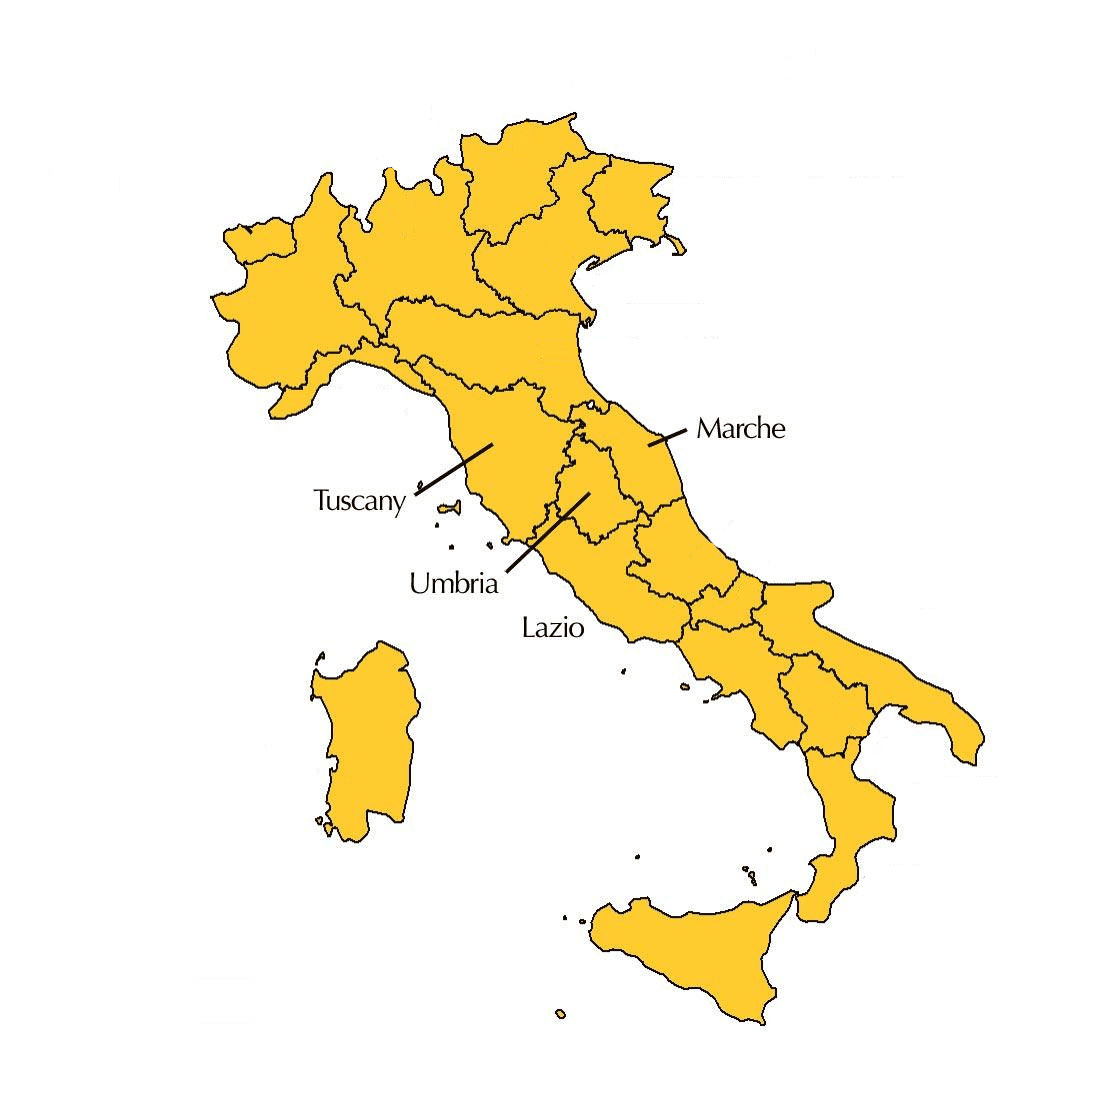 The four regions of Central Italy